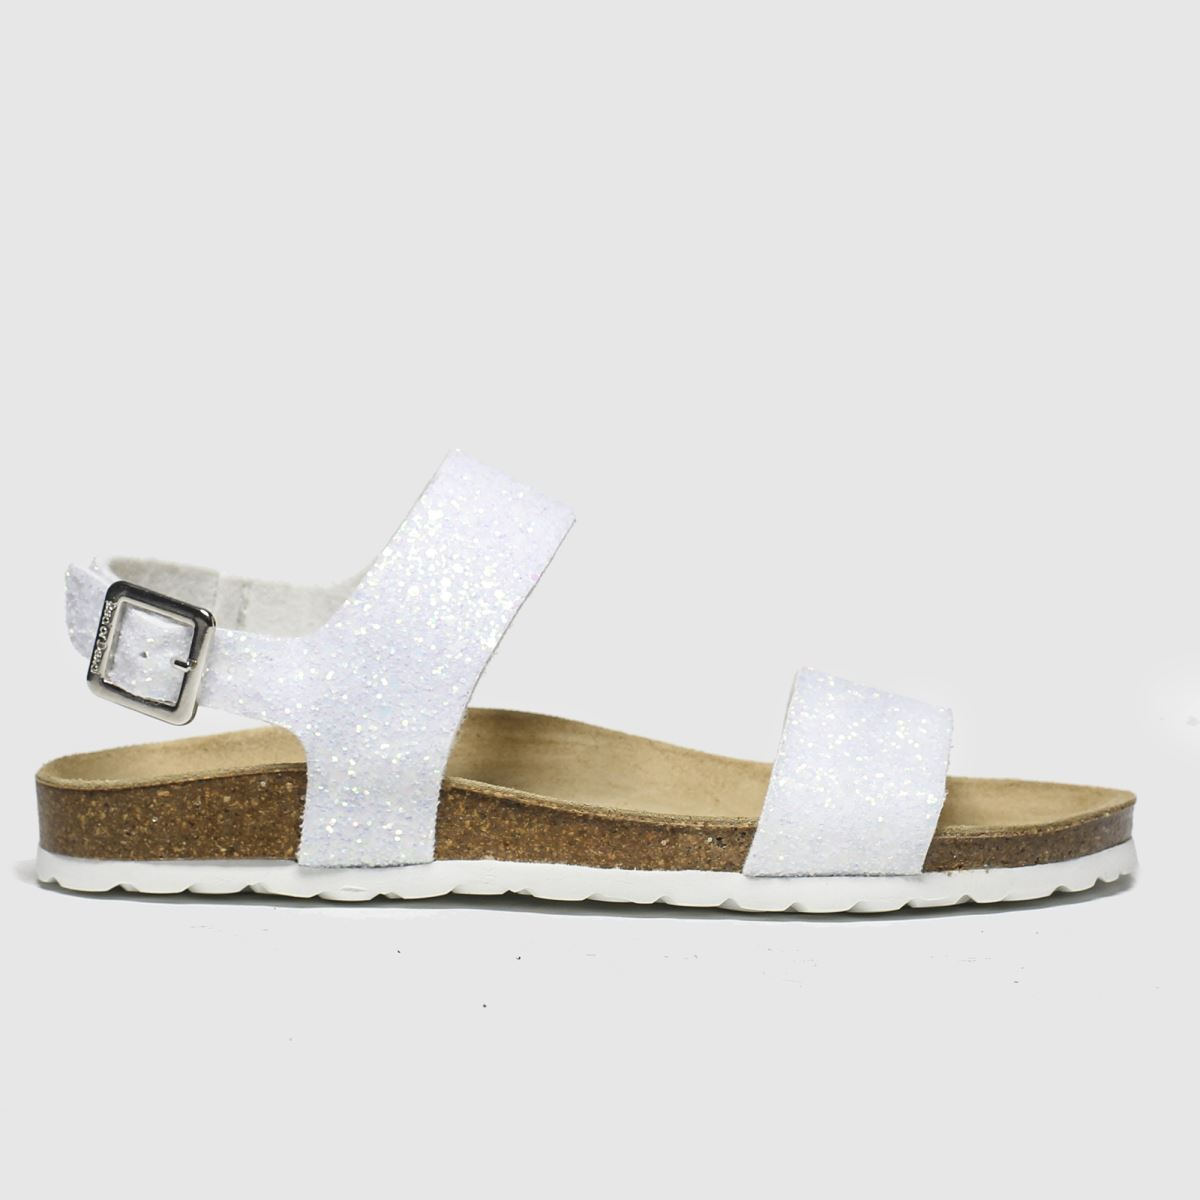 Red Or Dead White Viscount Ii Sandals